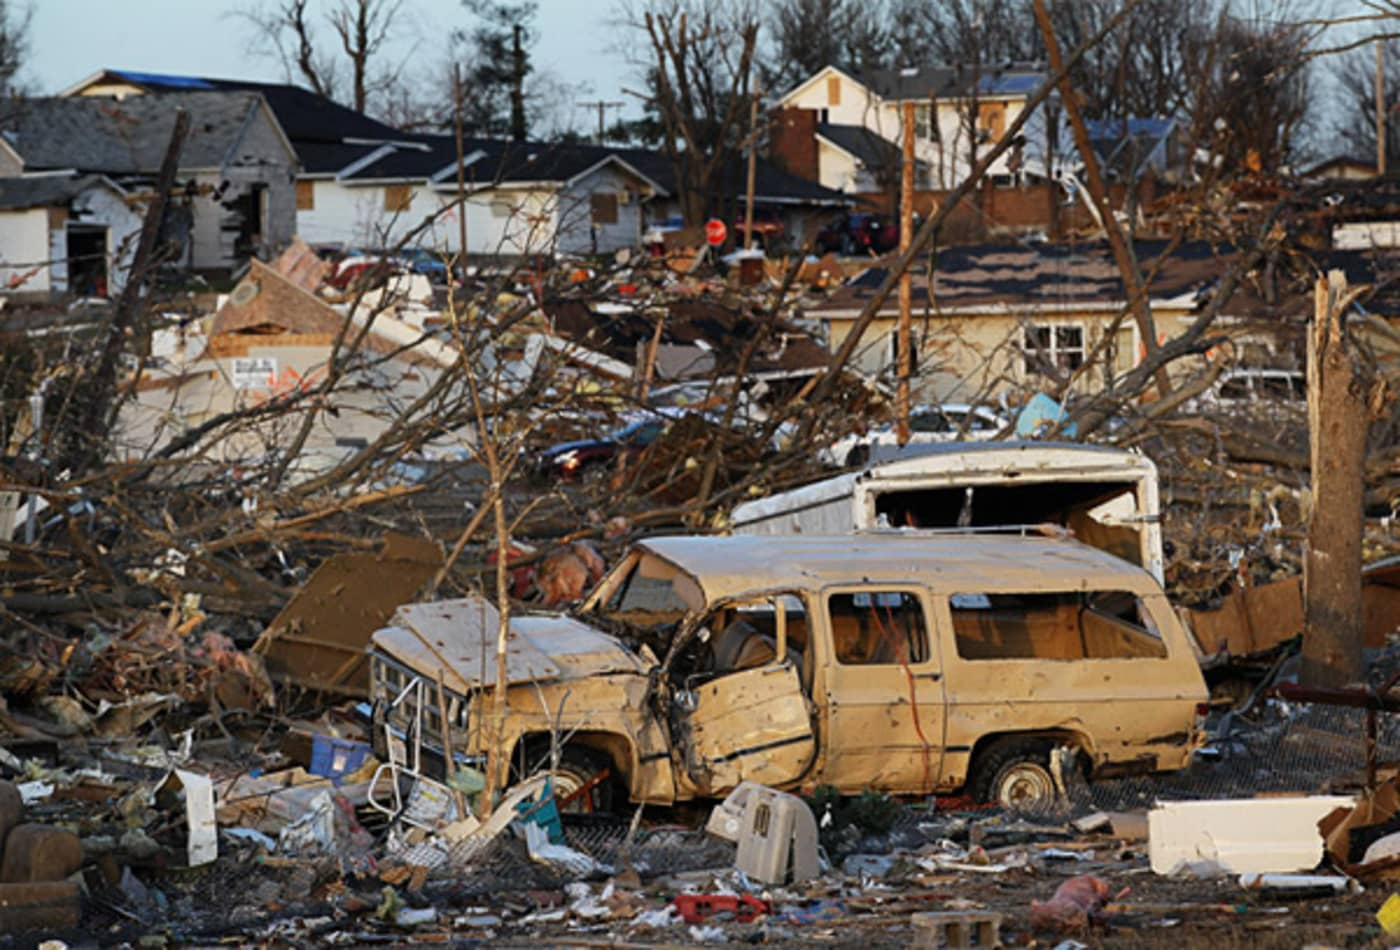 scenes-from-the-midwest-tornadoes-vehicle.jpg